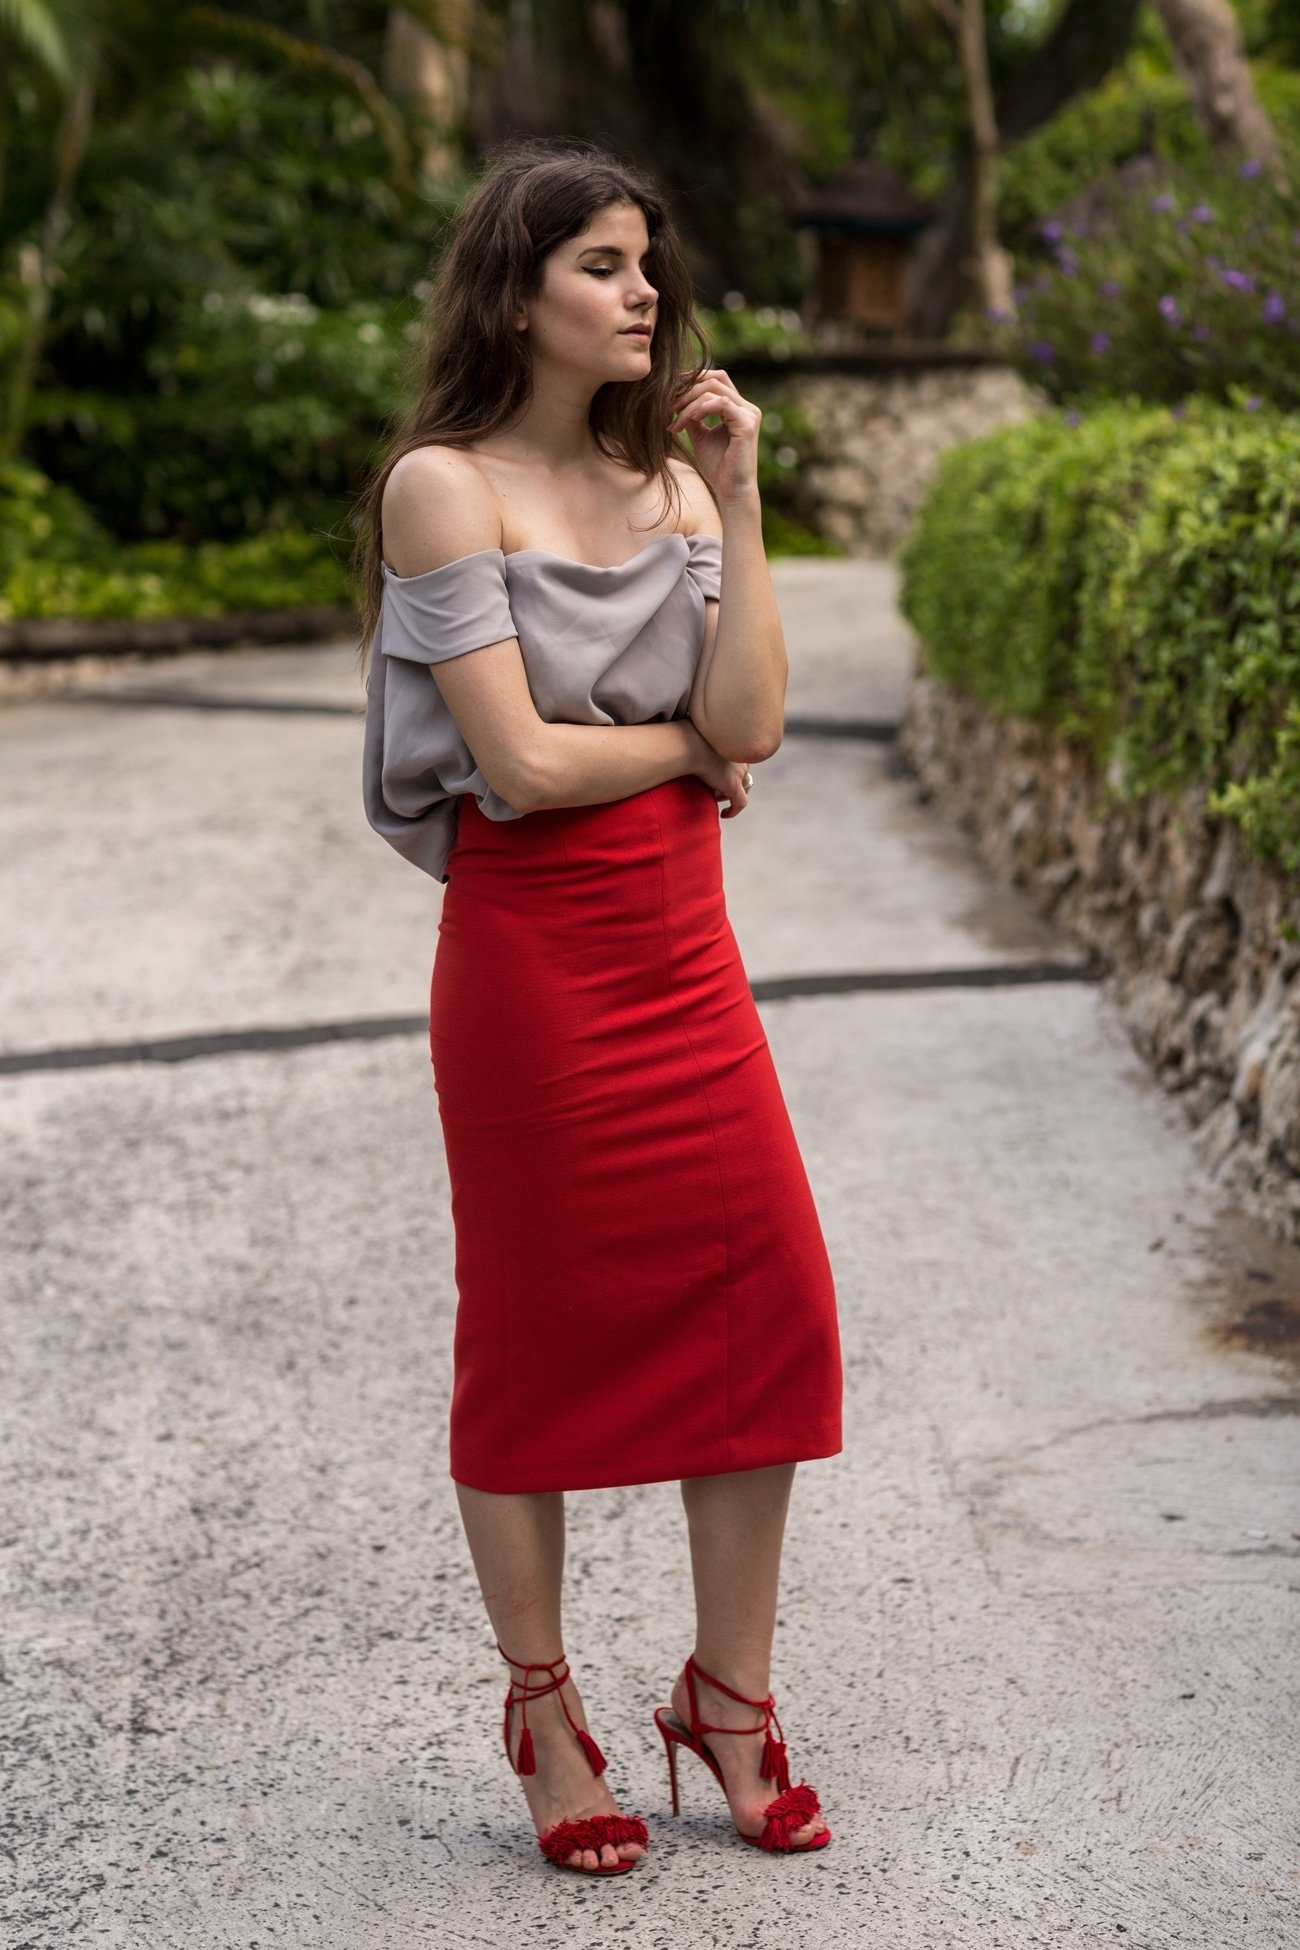 10 Perfect Red Pencil Skirt Outfit Ideas chic dinner outfit thefashionfraction 2020